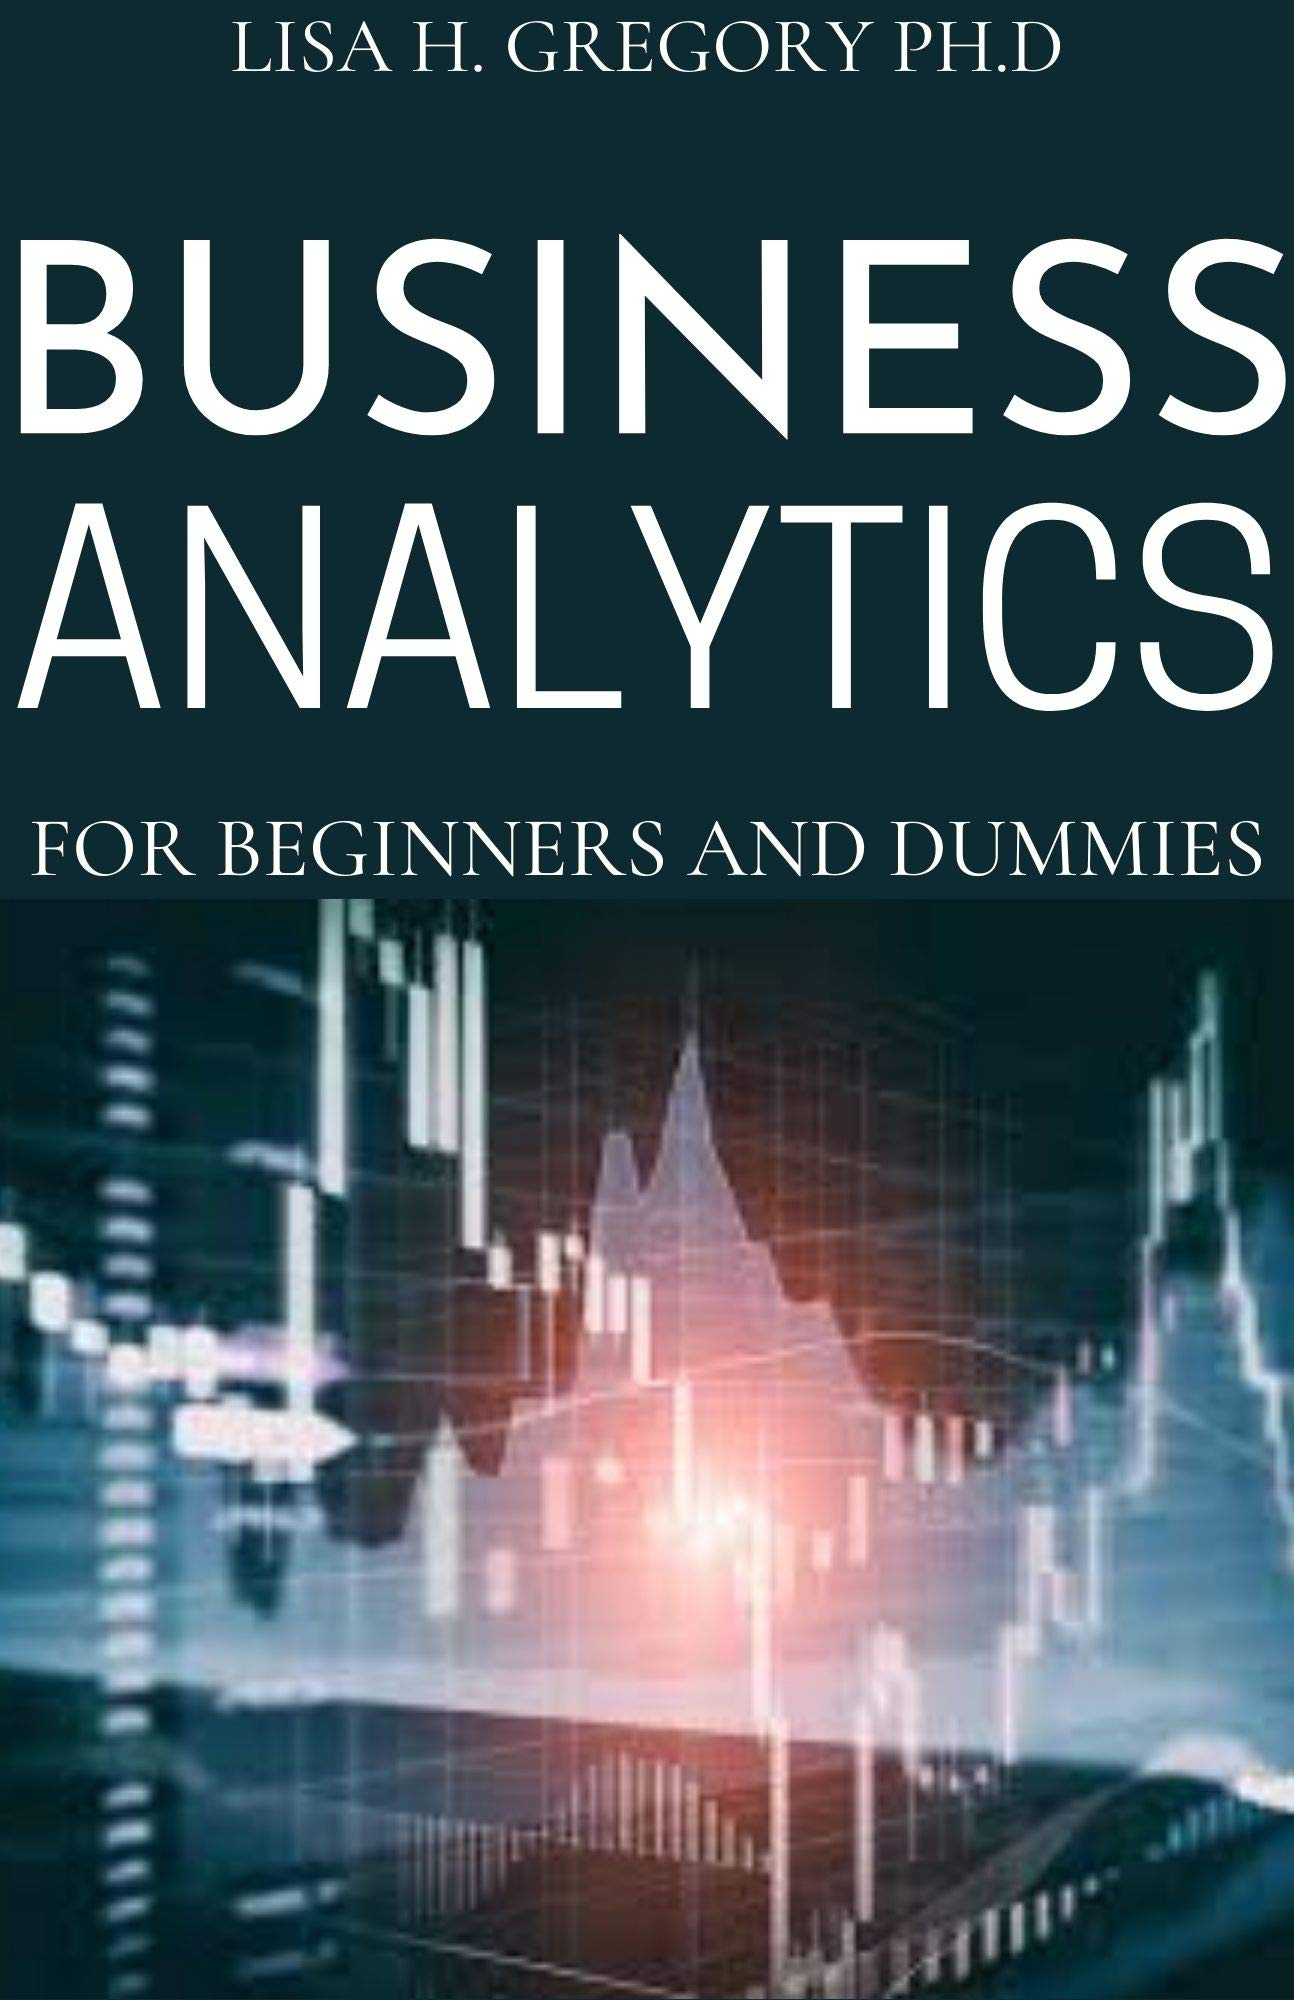 BUSINESS ANALYTICS FOR BEGINNERS AND DUMMIES: A MANAGERIAL PERSPECTIVE ON BUSINESS INTELLIGENCE AND DATA SCIENCE